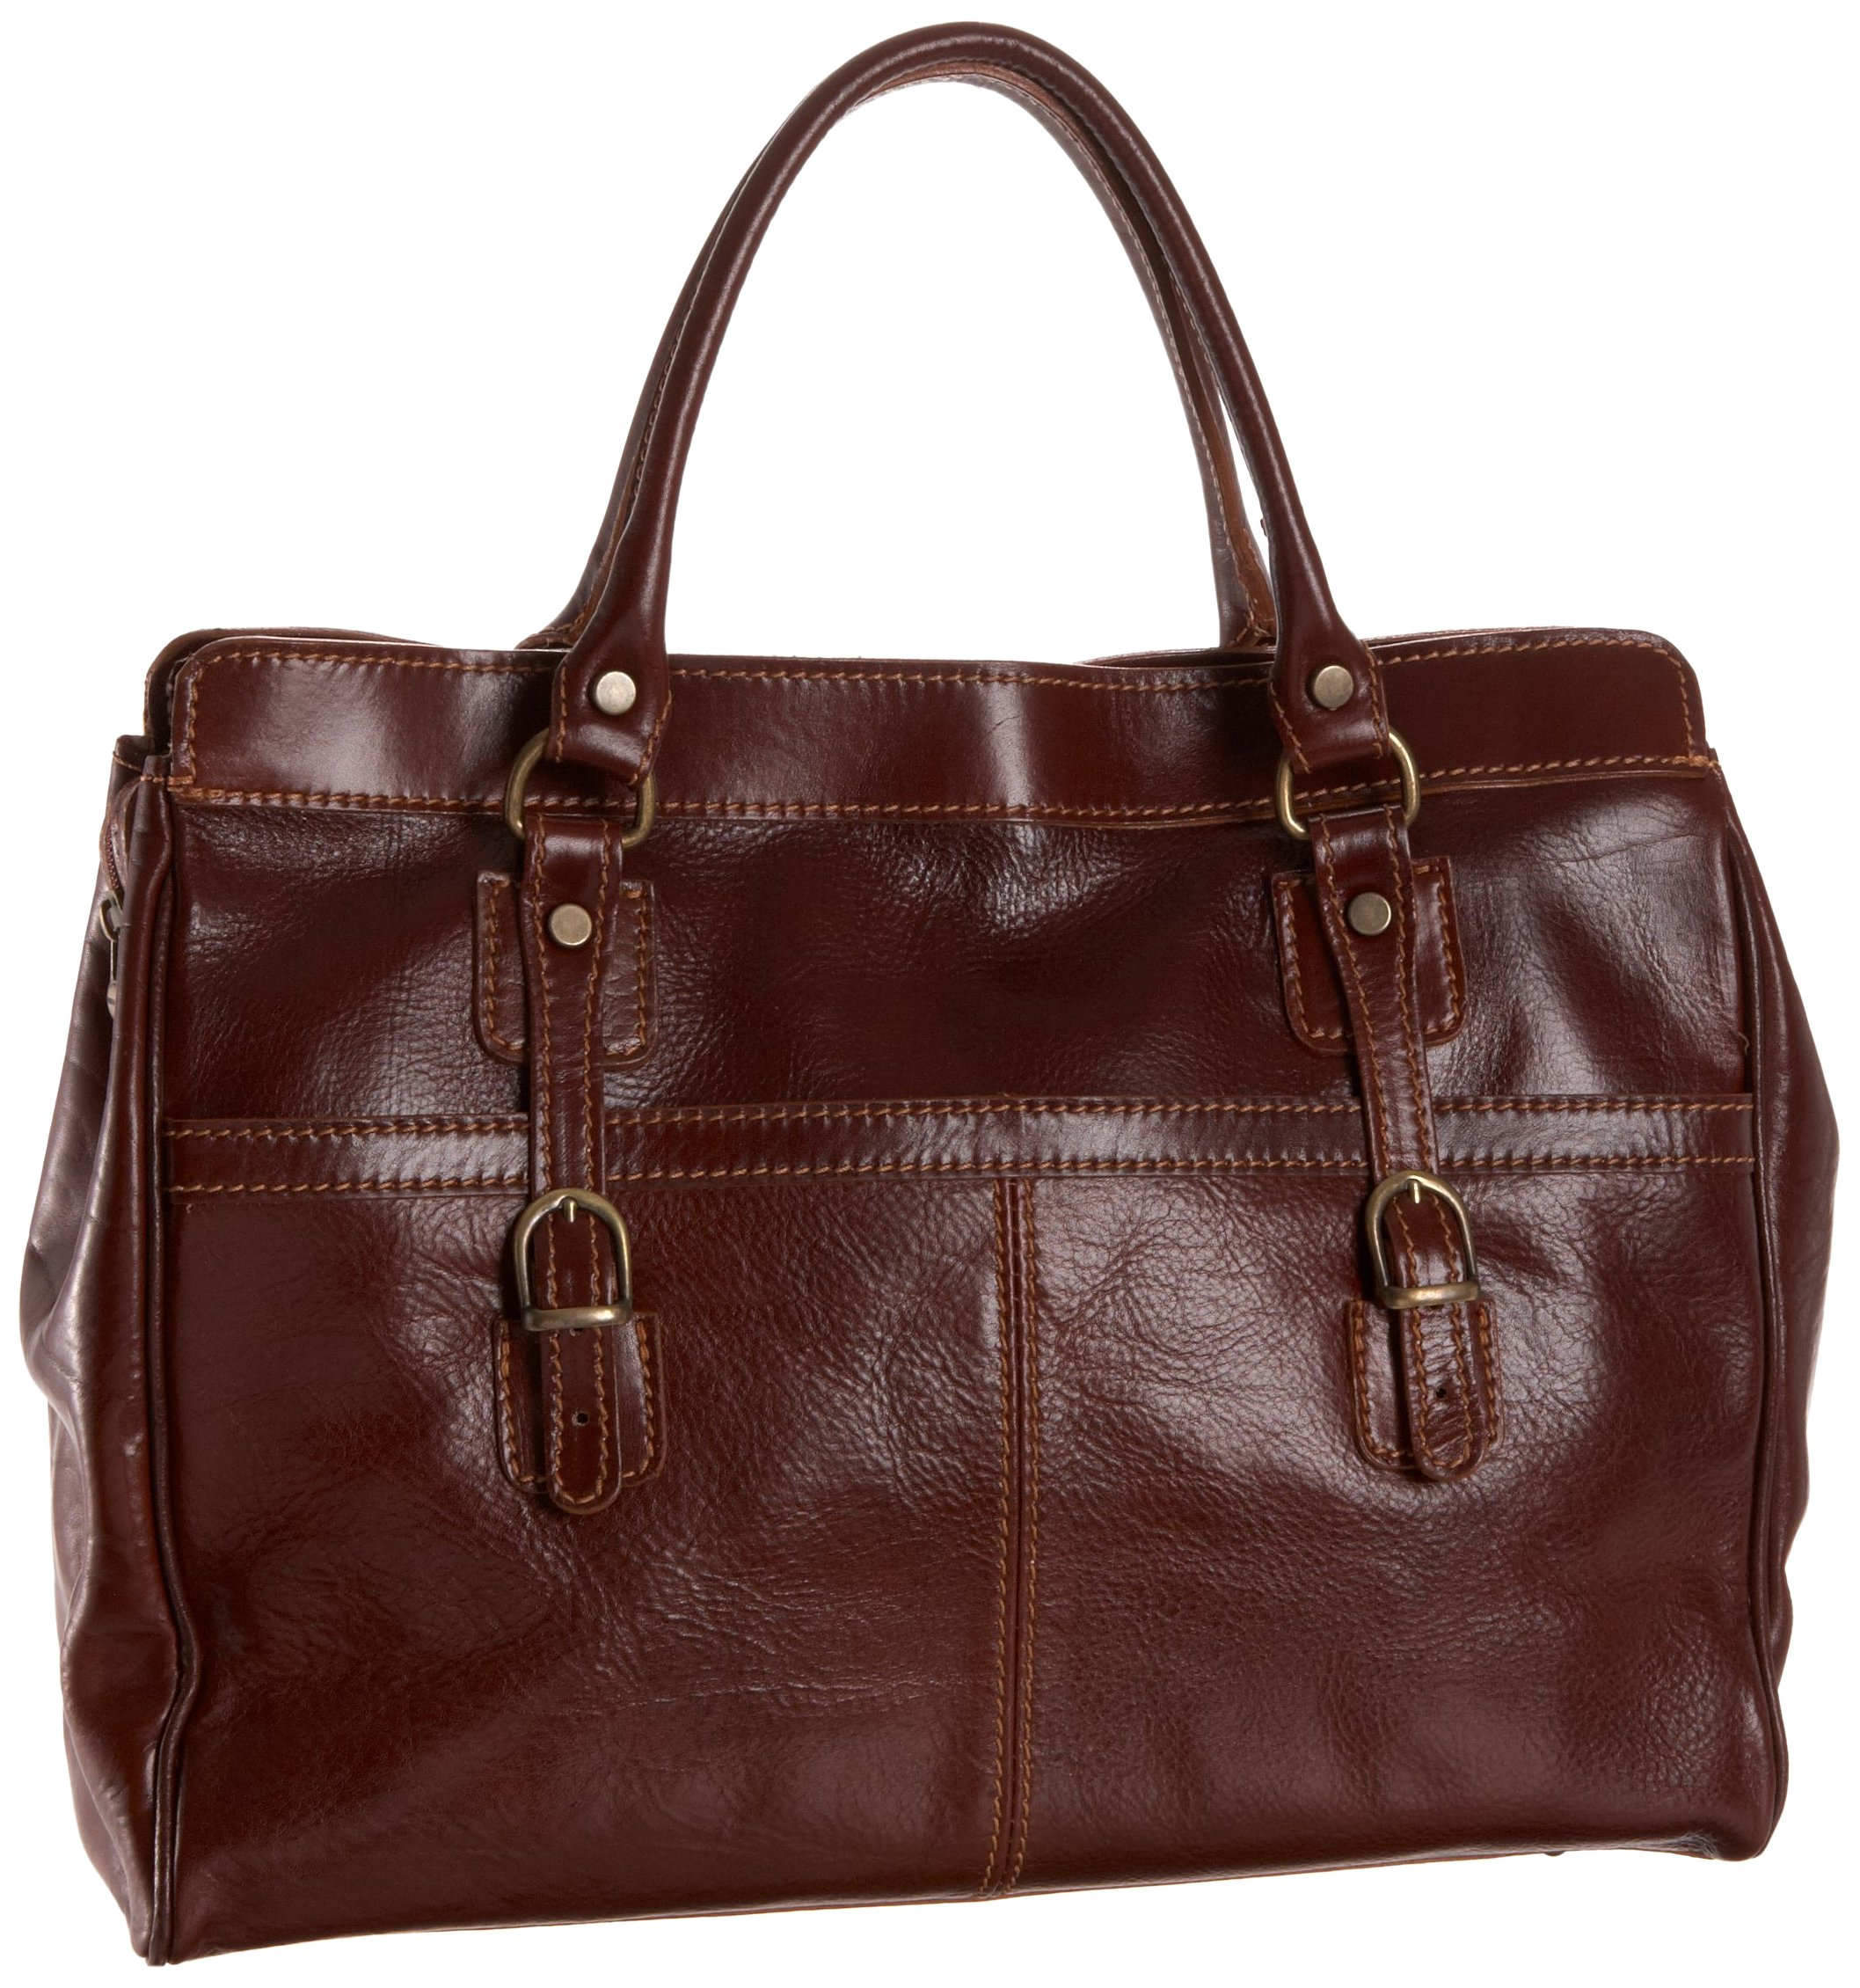 Floto Casiana Mini Handbag, Vecchio Brown, One Size by Floto